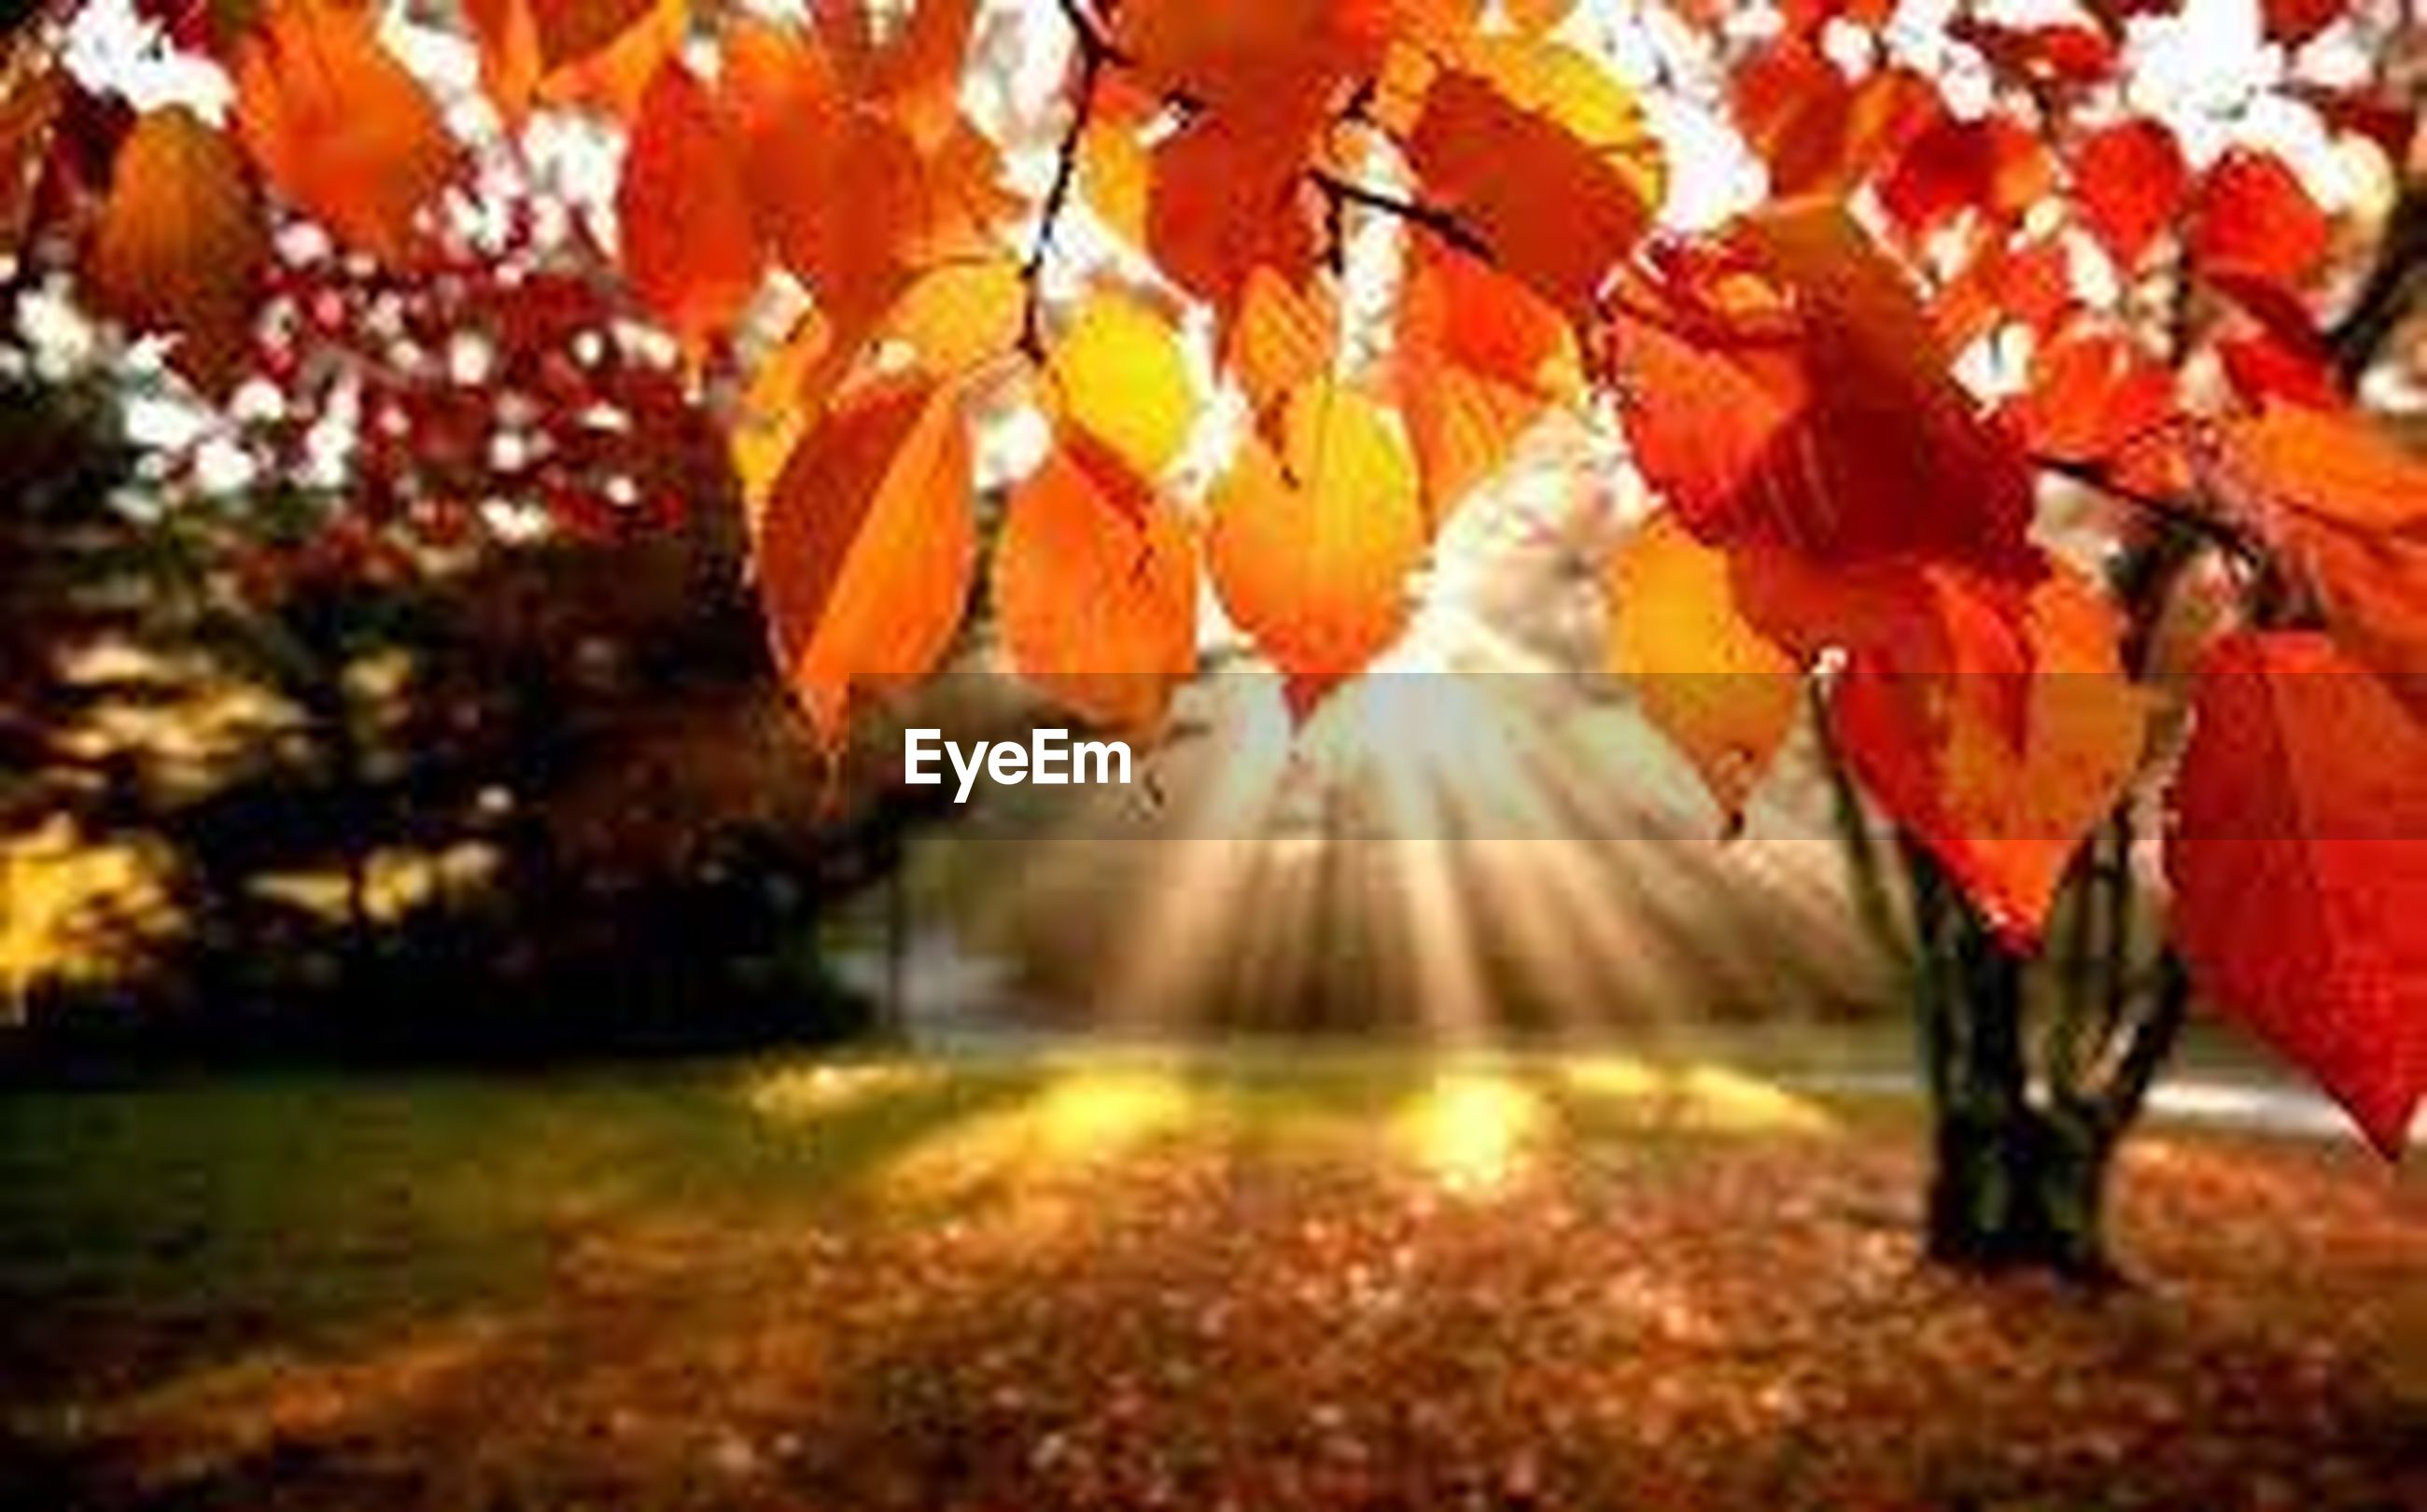 autumn, change, season, leaf, orange color, leaves, tree, selective focus, nature, red, beauty in nature, tranquility, fallen, maple leaf, falling, focus on foreground, growth, outdoors, no people, day